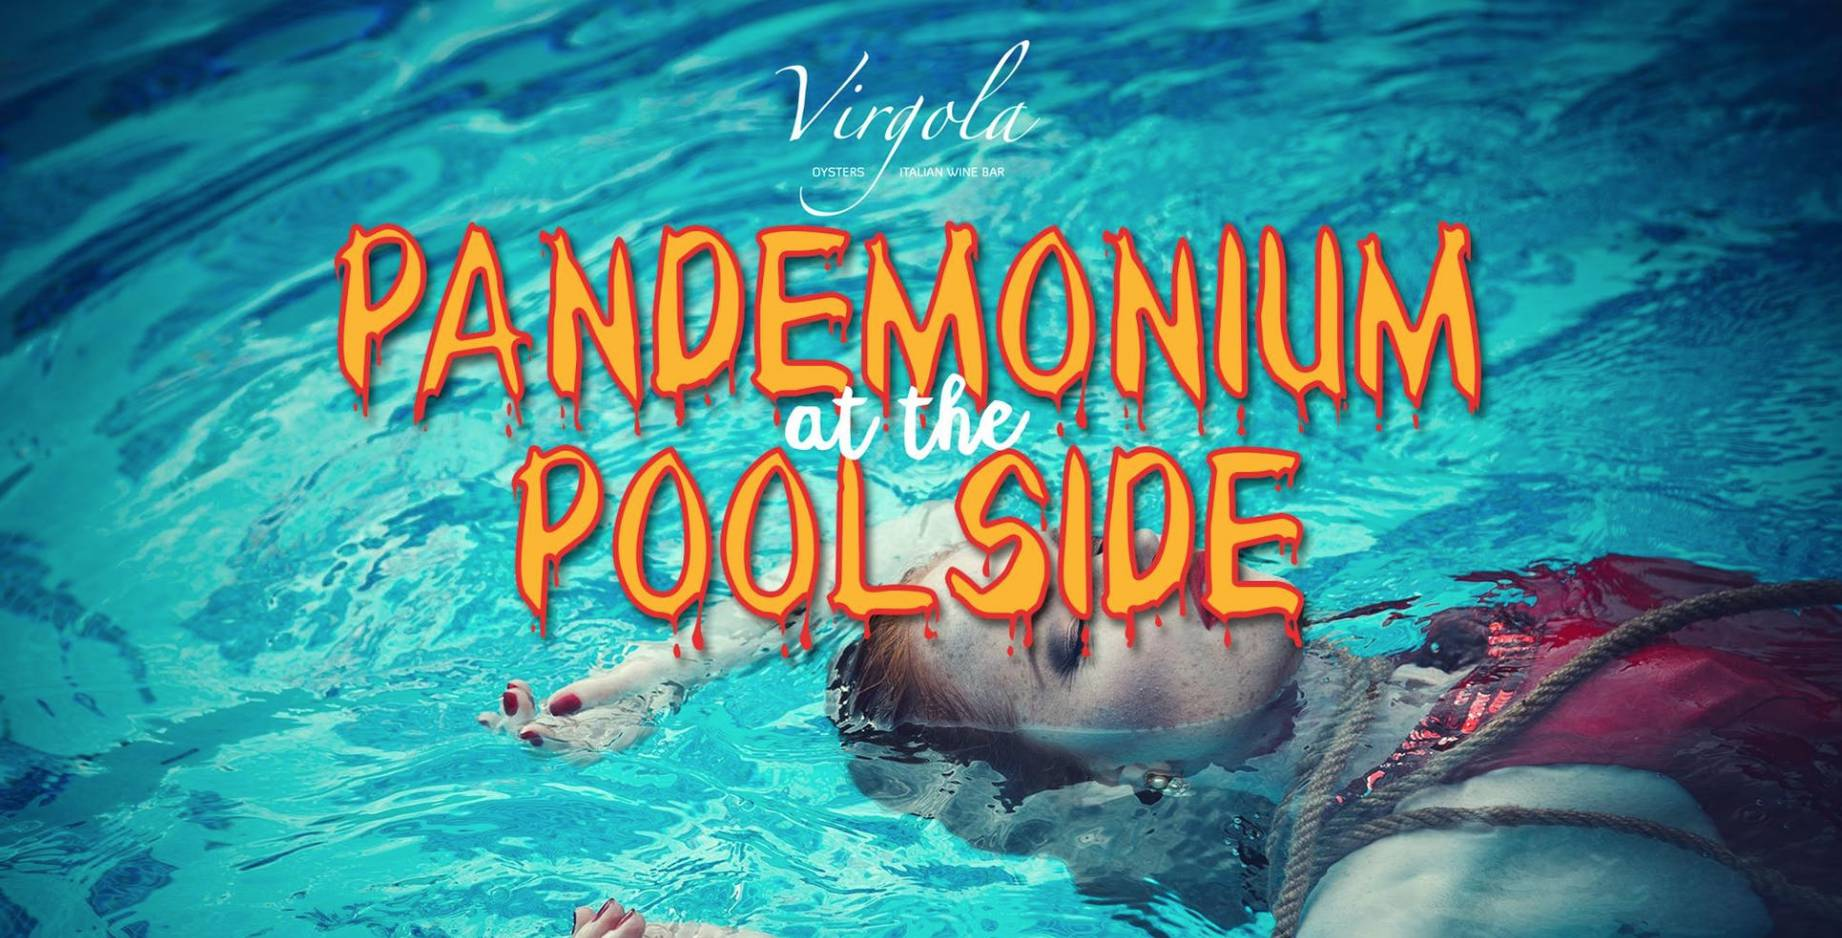 Murder Mystery Party: Pandemonium at the Poolside